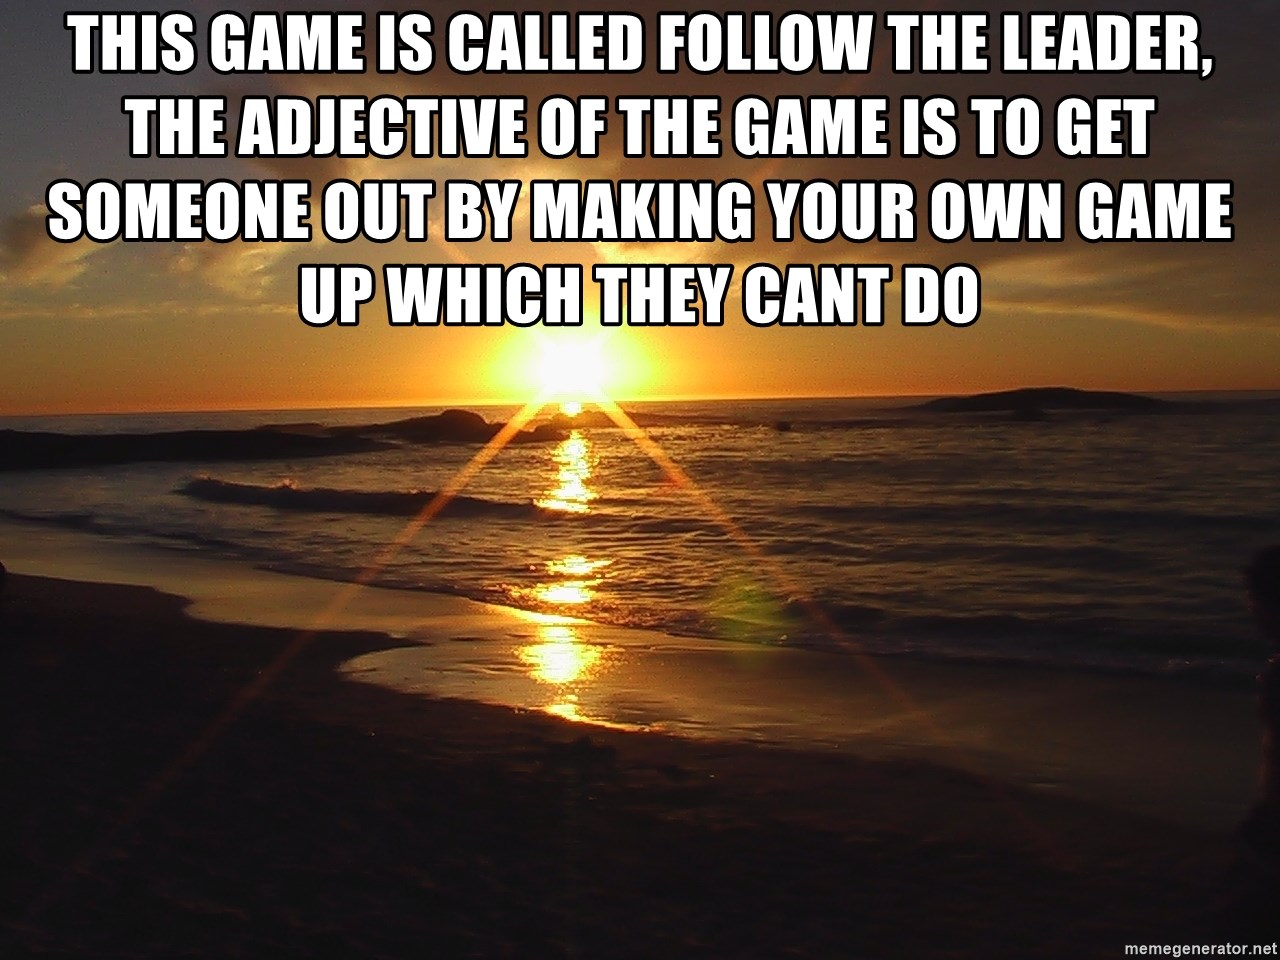 this game is called follow the leader, the adjective of the